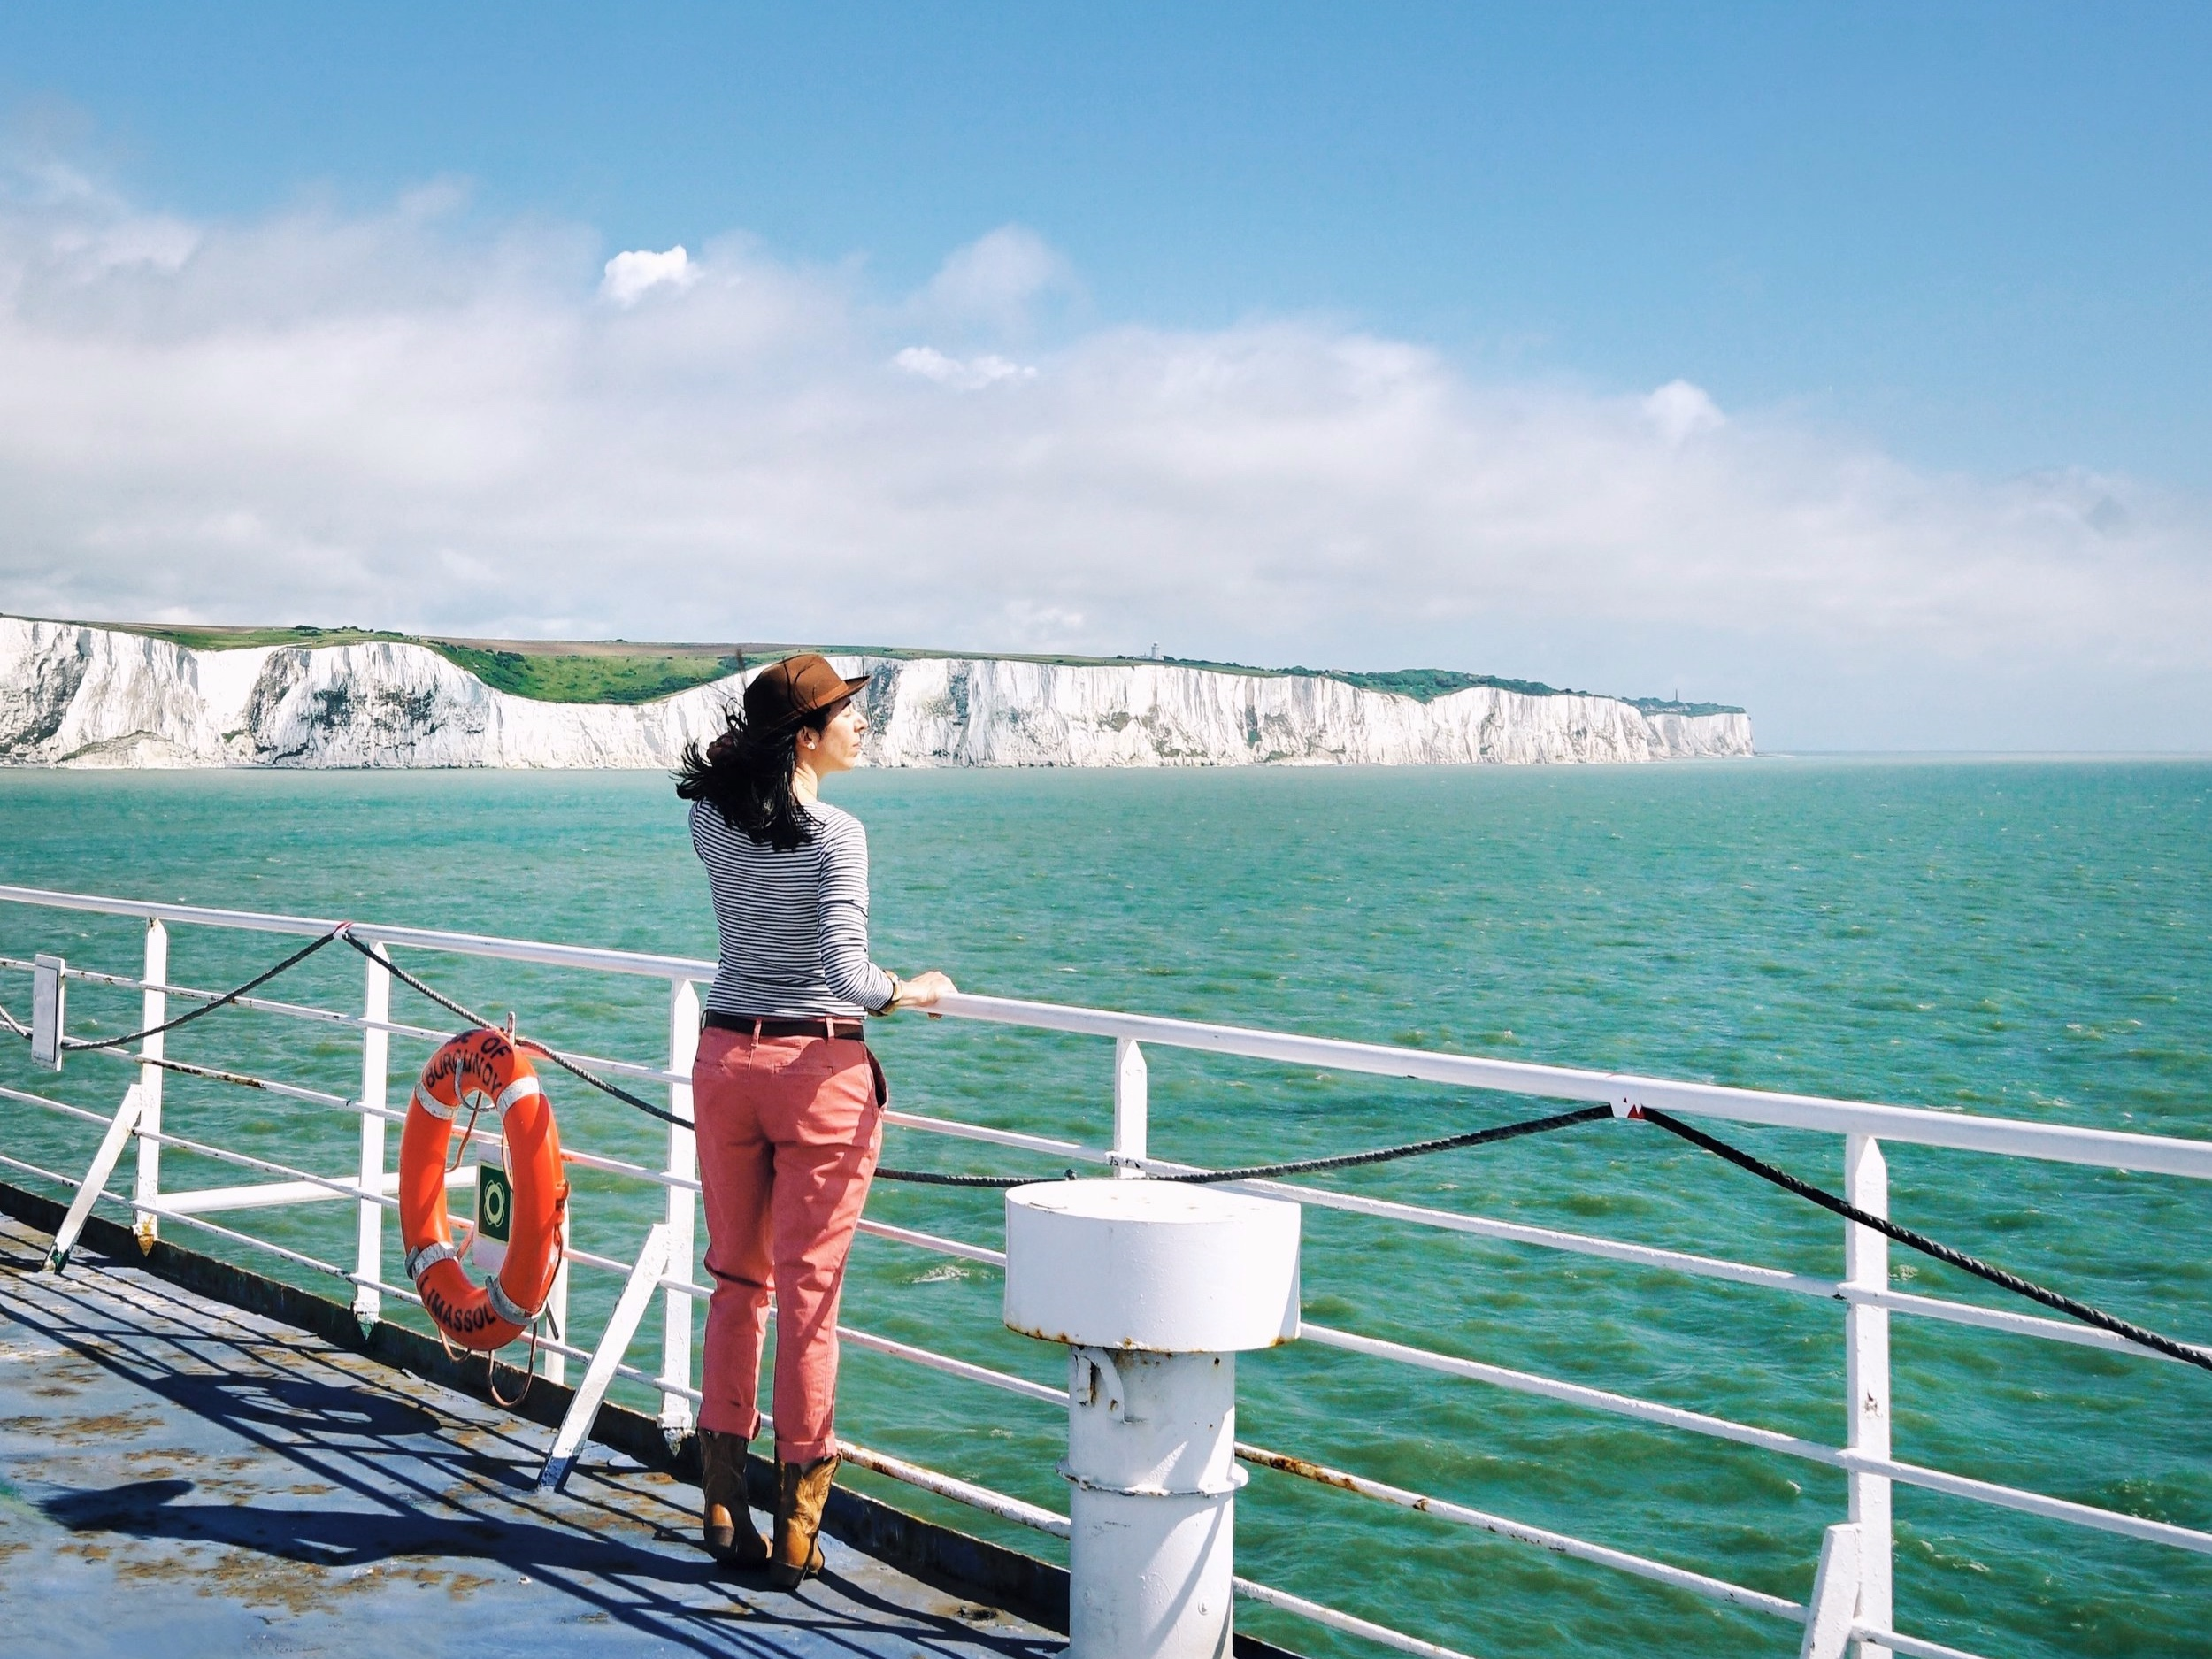 Taking in the White Cliffs of Dover from the deck.